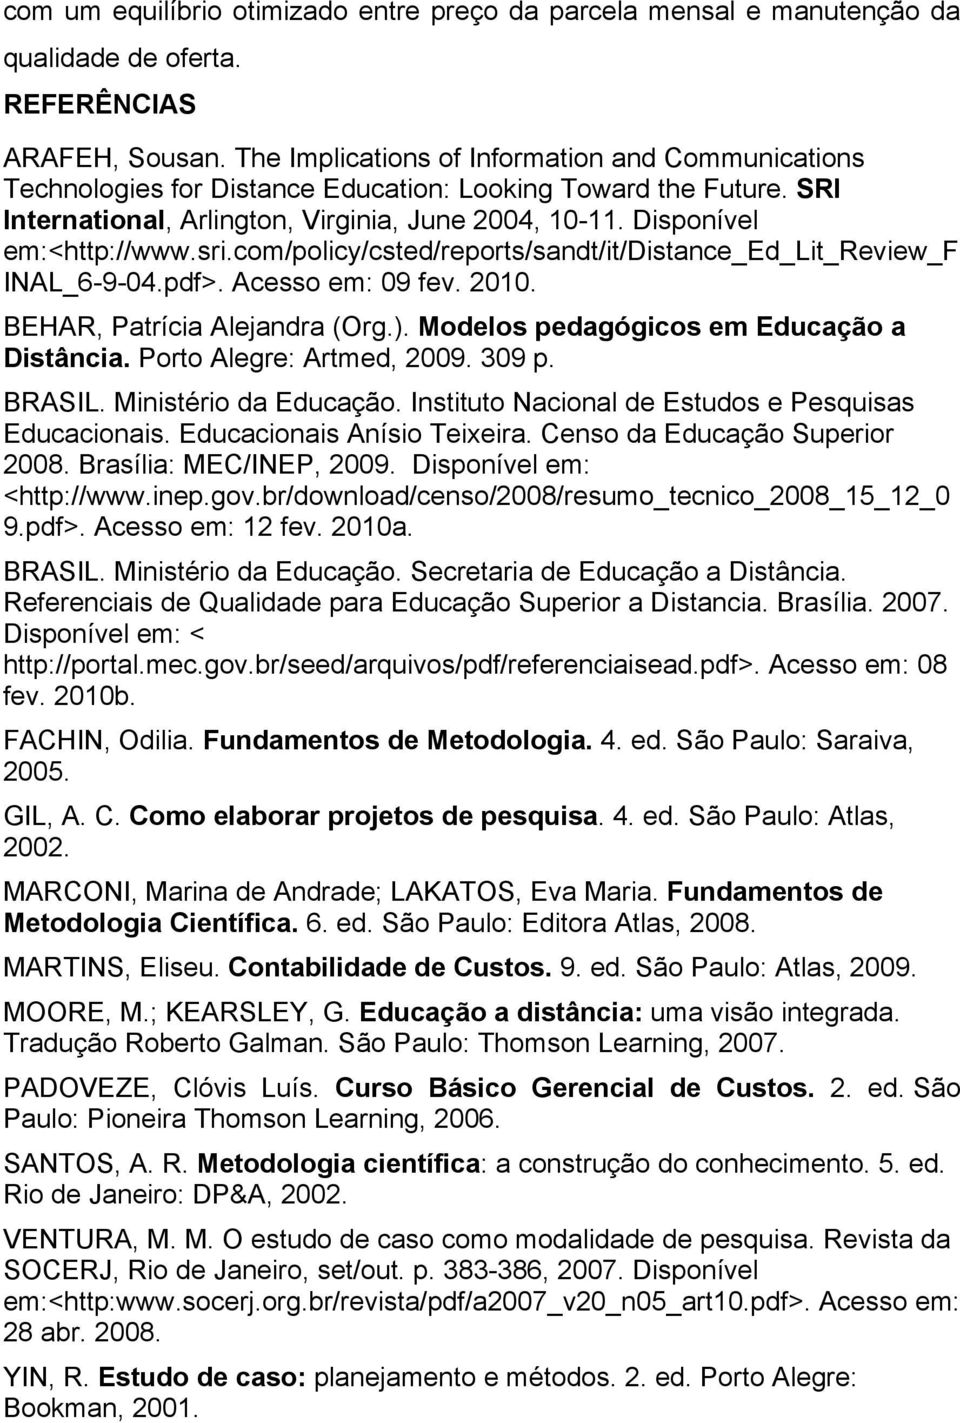 sri.com/policy/csted/reports/sandt/it/distance_ed_lit_review_f INAL_6-9-04.pdf>. Acesso em: 09 fev. 2010. BEHAR, Patrícia Alejandra (Org.). Modelos pedagógicos em Educação a Distância.